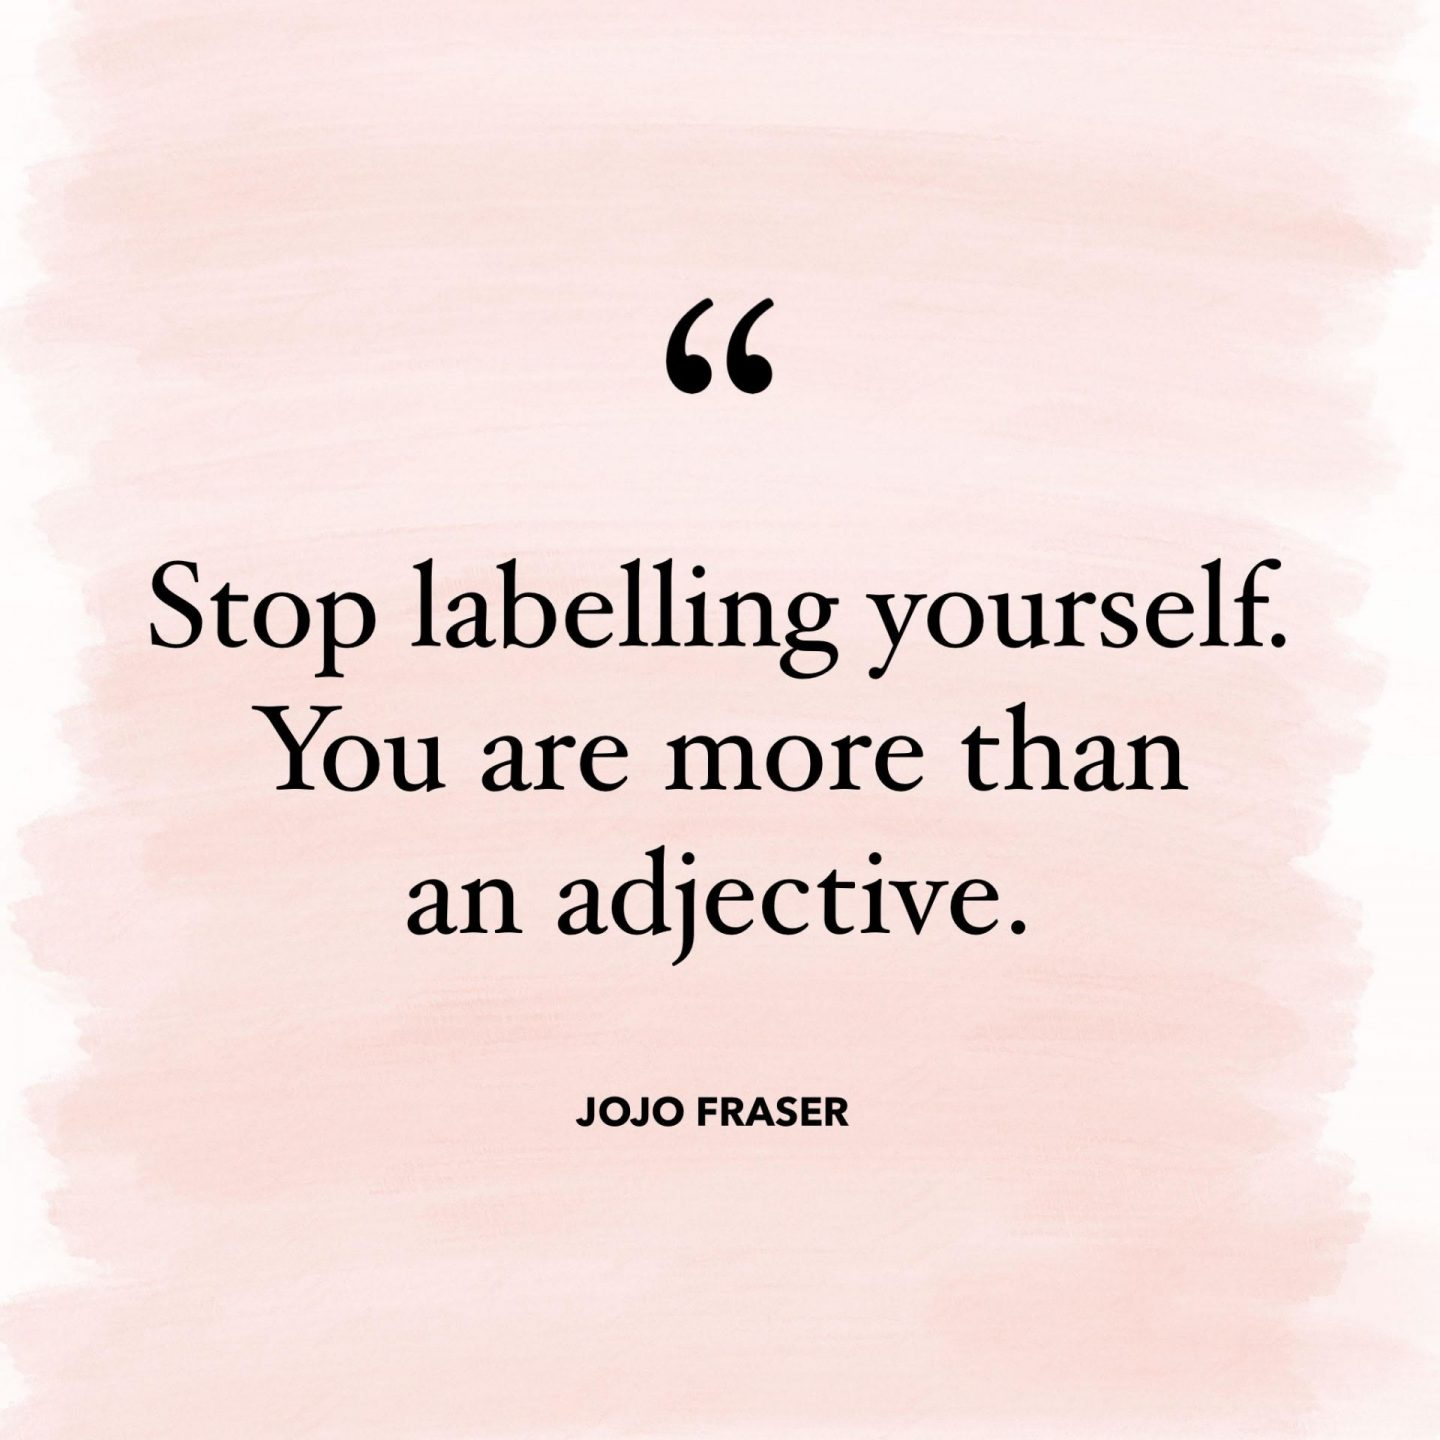 Jojo Fraser - you are more than an adjective